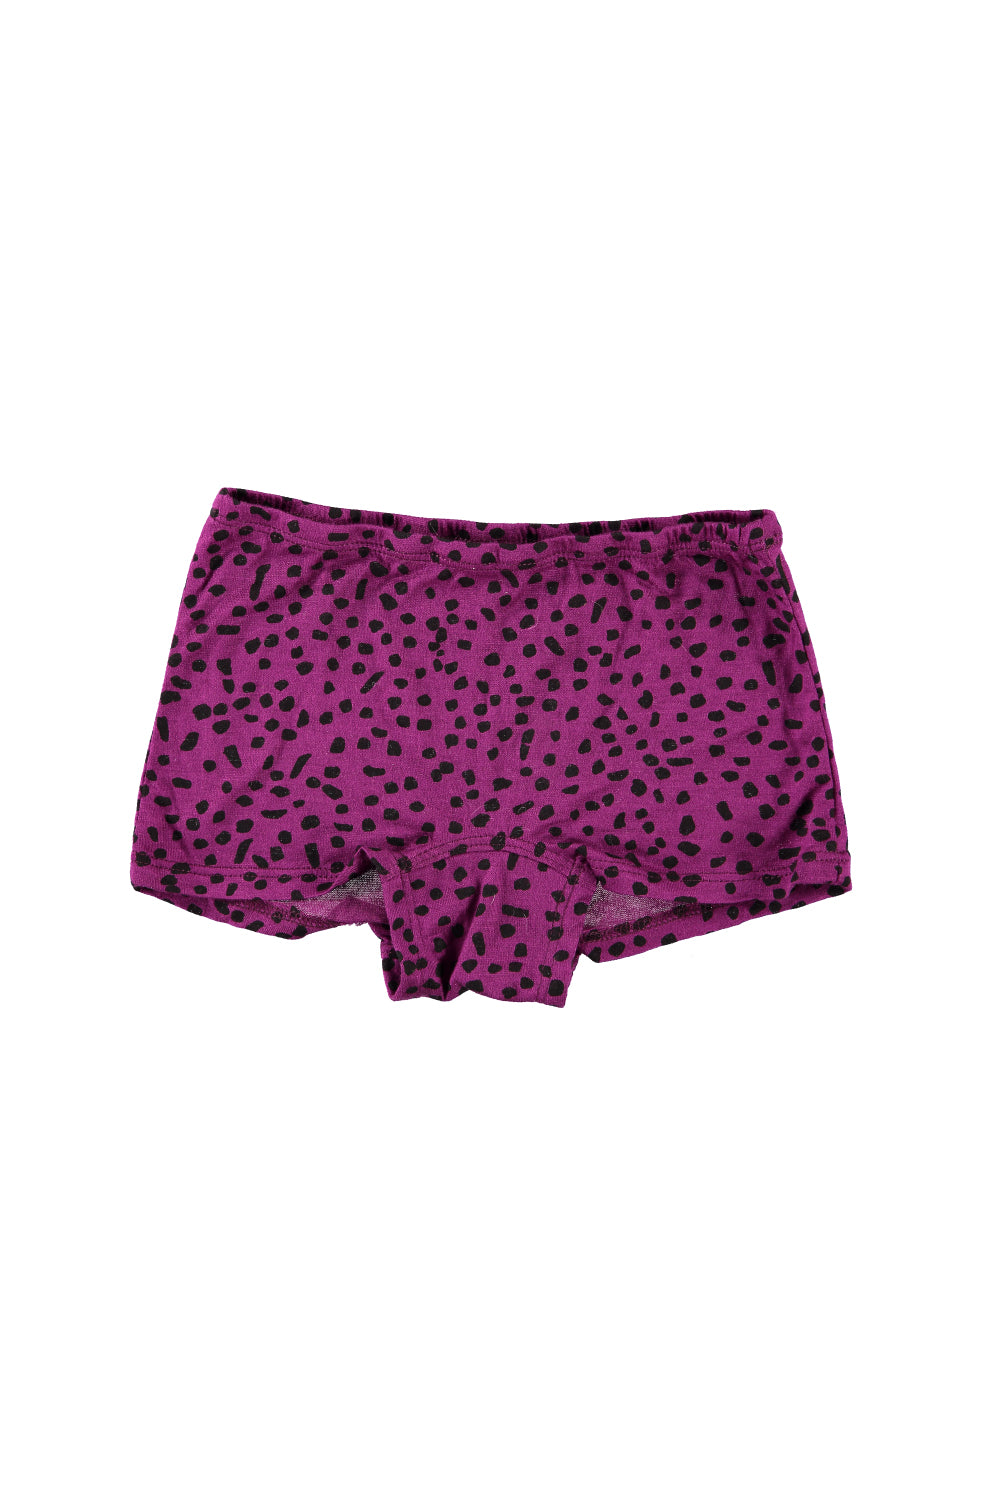 Boy Short Undies - Magenta Dot